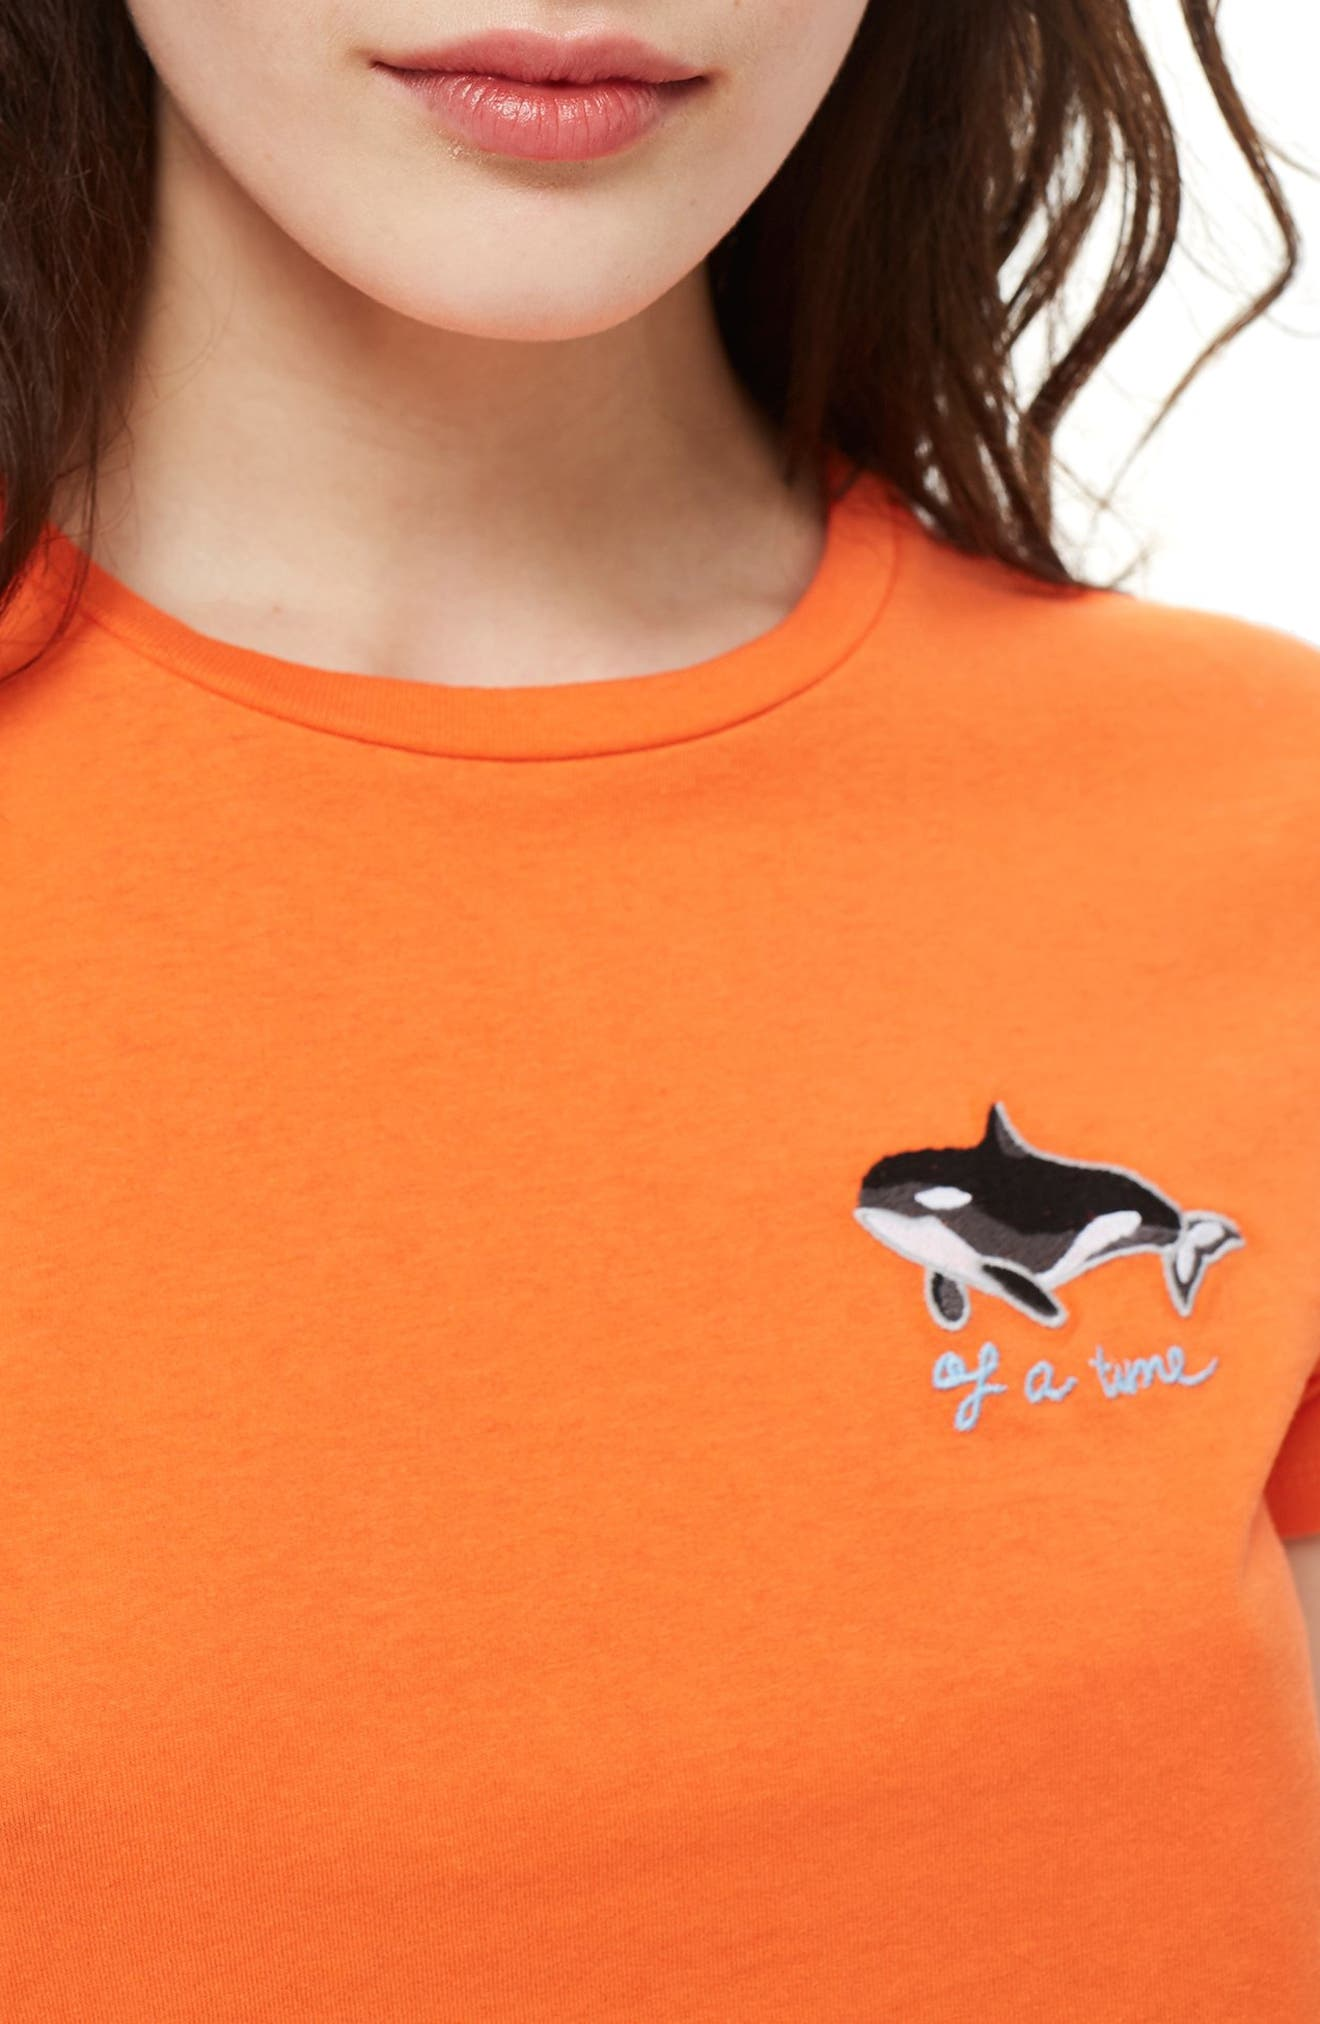 Whale of a Time Tee,                             Alternate thumbnail 4, color,                             800